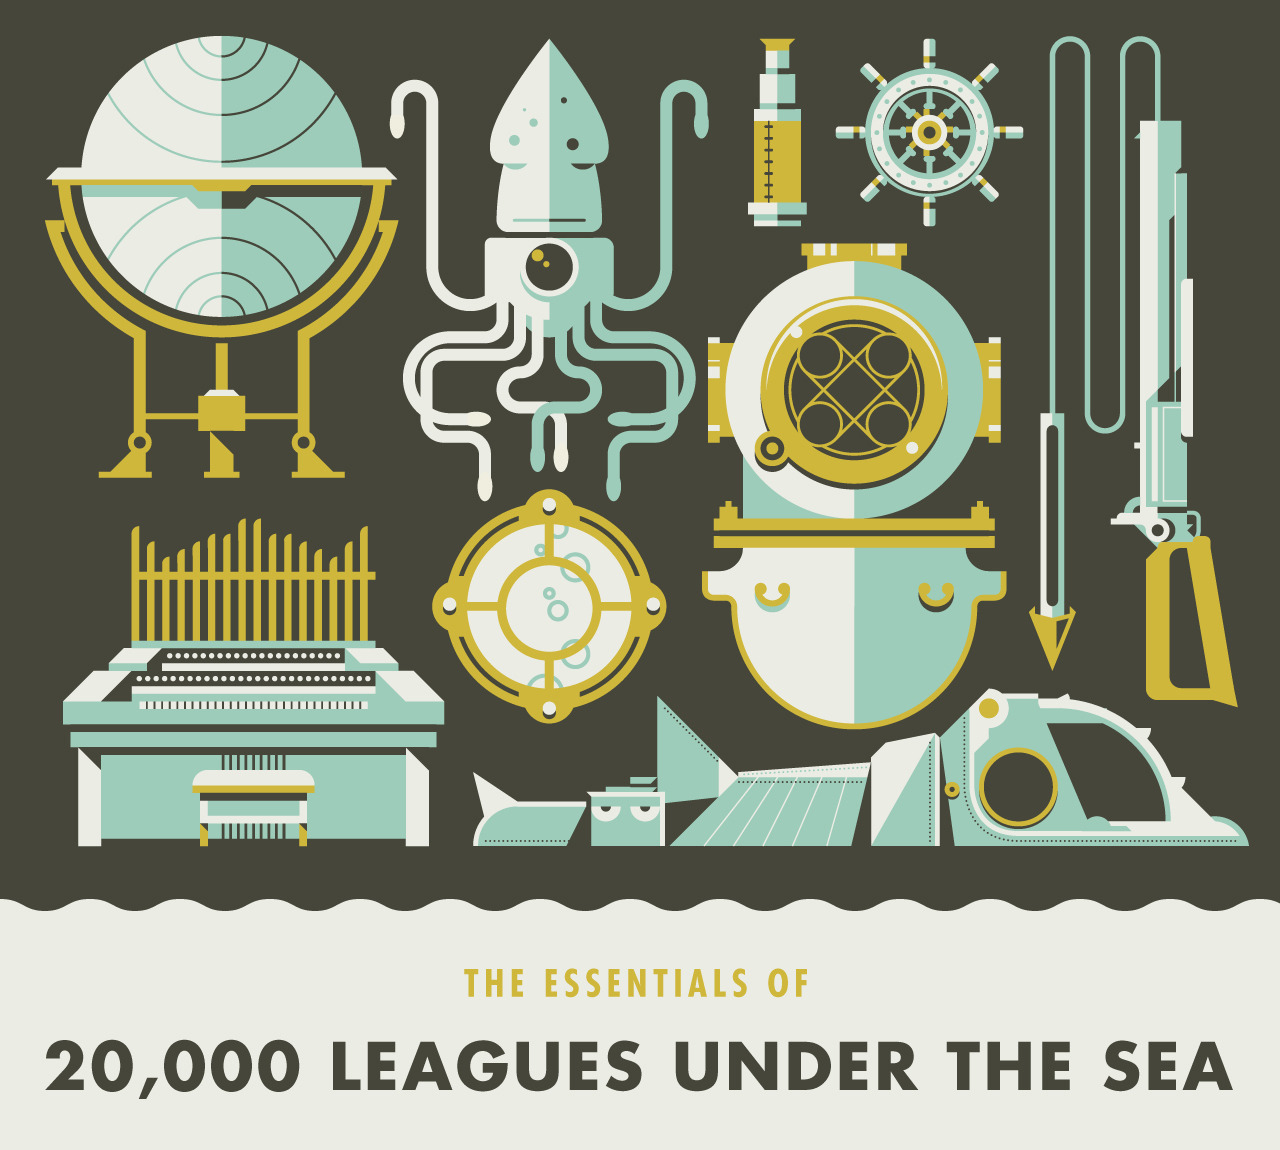 The Essentials of 20,000 Leagues Under the Sea by Justin Mezzell